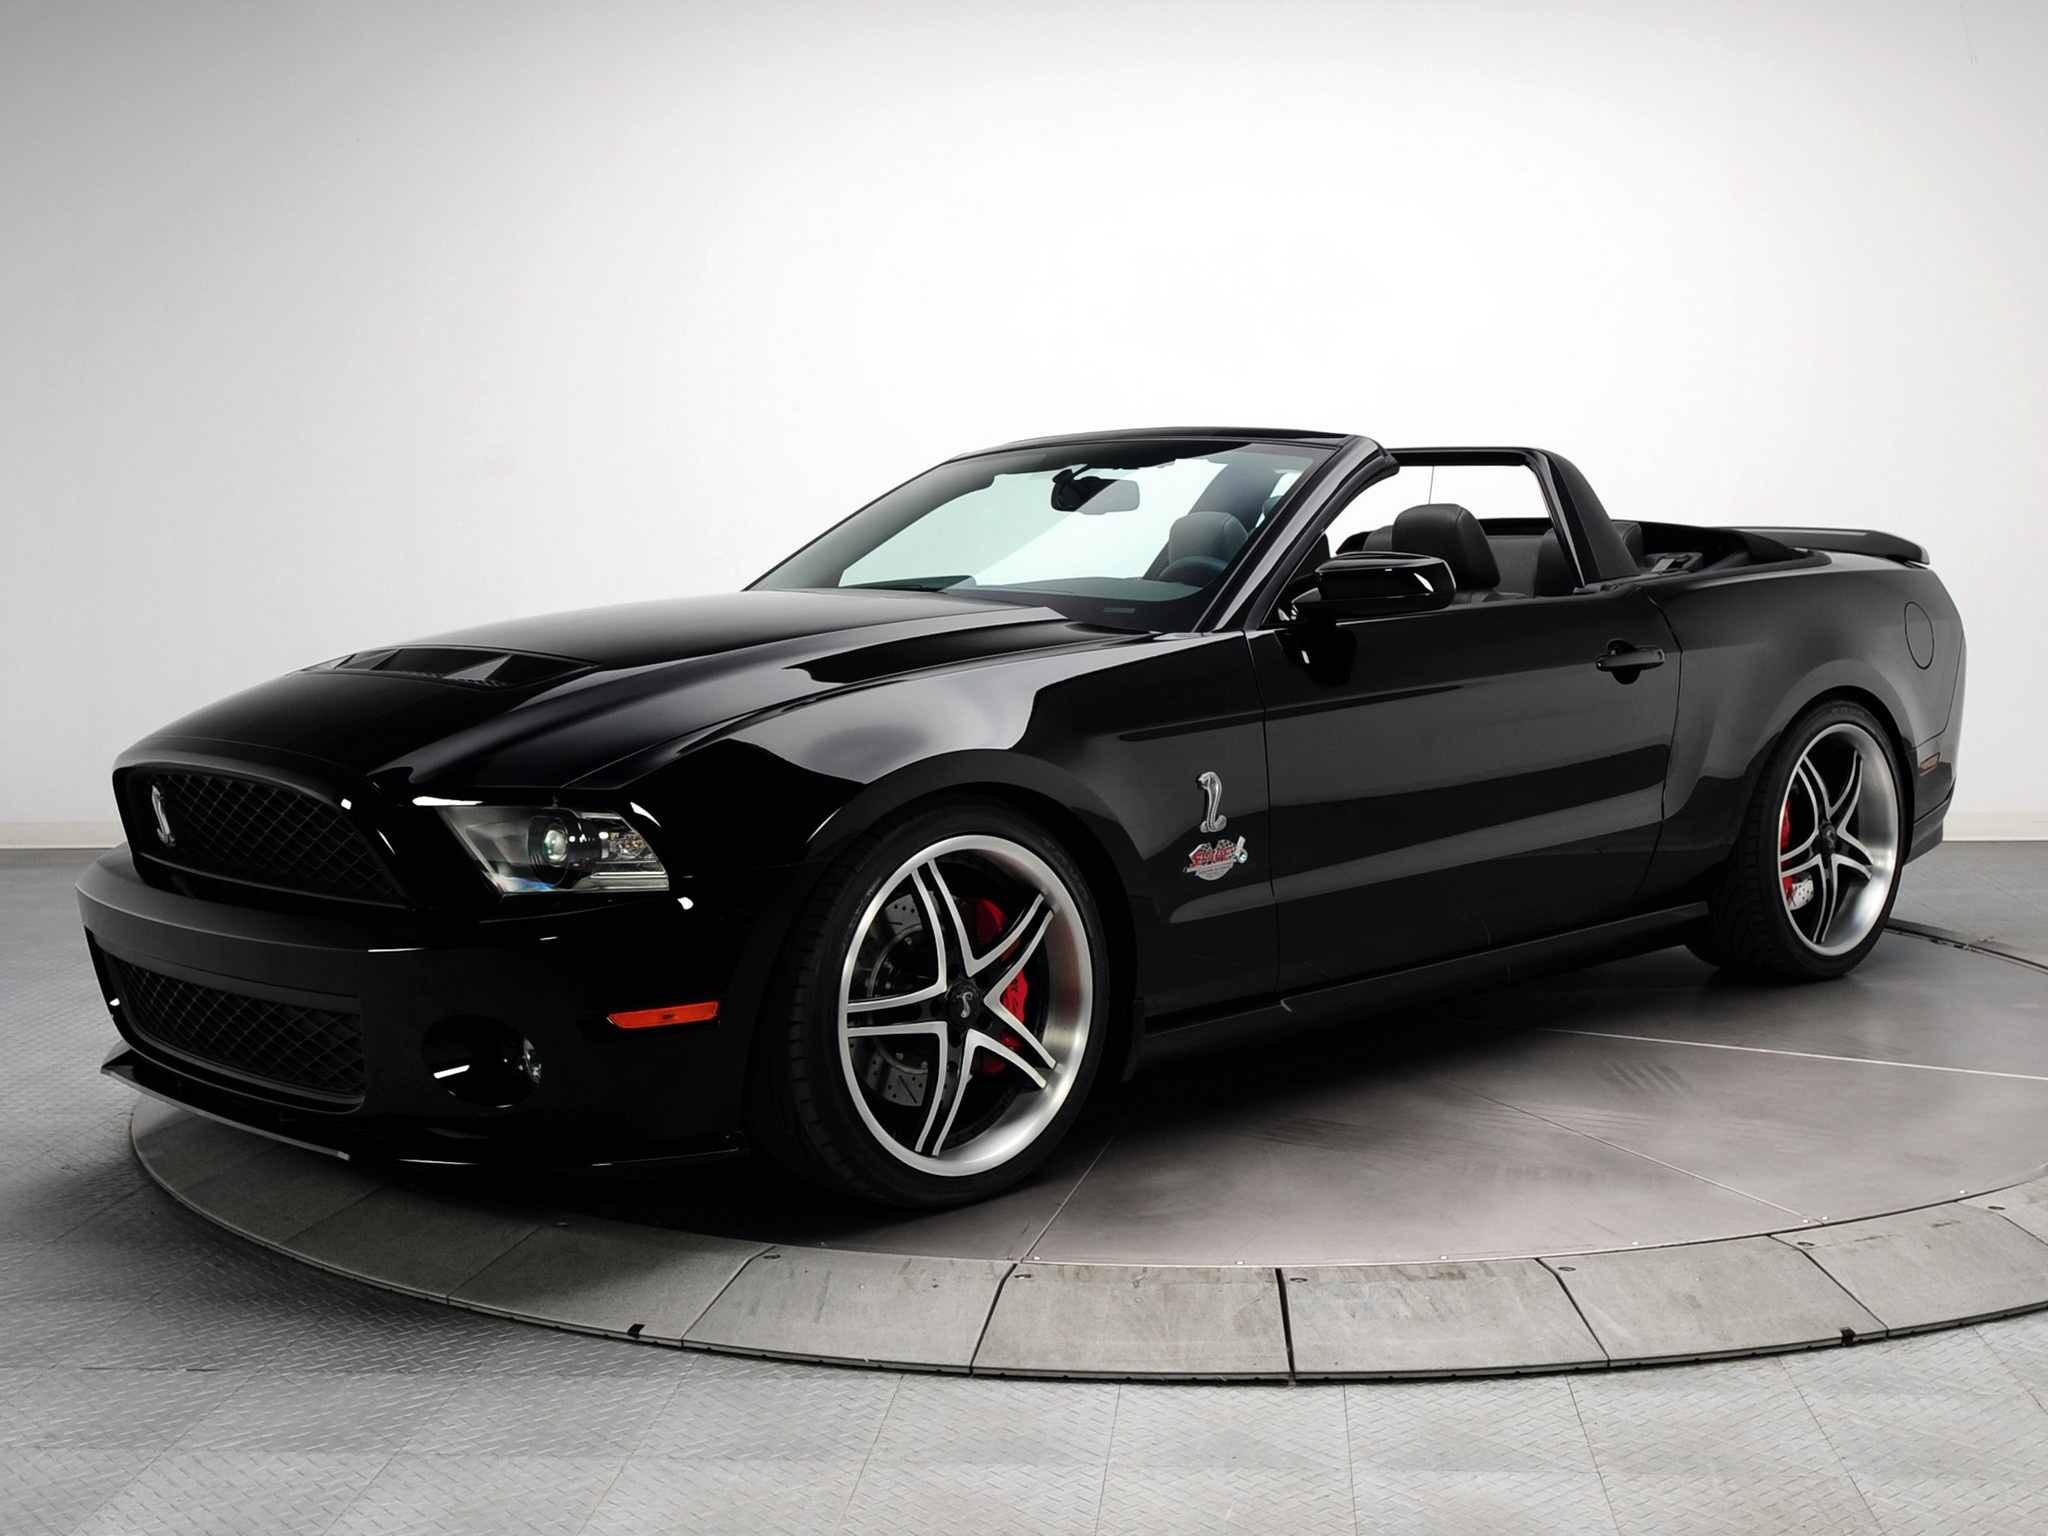 ford mustang shelby gt500 convertible specs 2009 2010 2011 2012 autoevolution. Black Bedroom Furniture Sets. Home Design Ideas